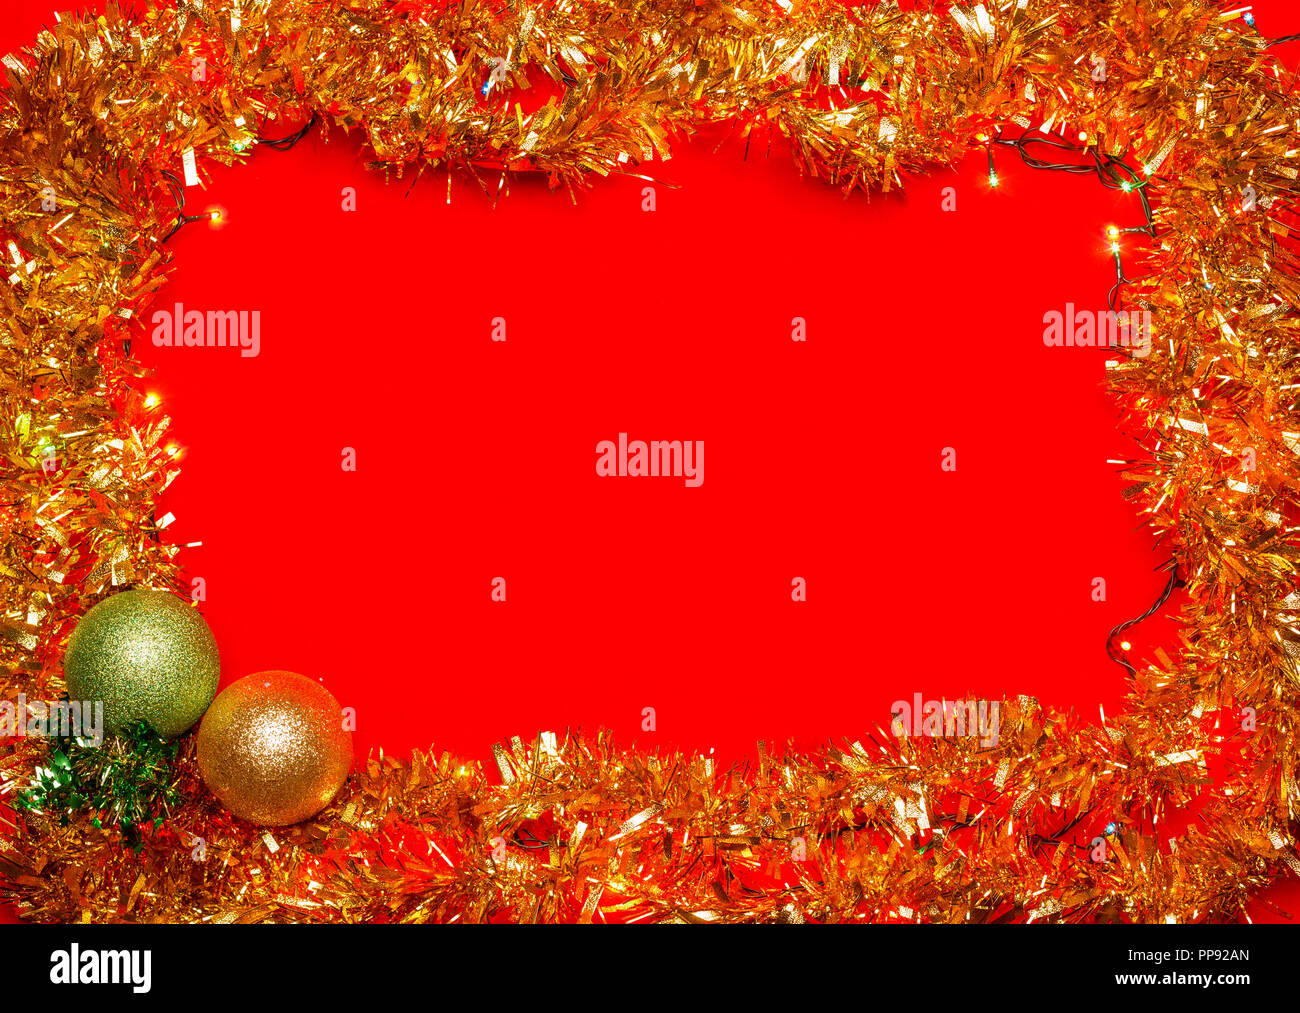 Christmas baubles with lights and tinsel frame on red background - Stock Image